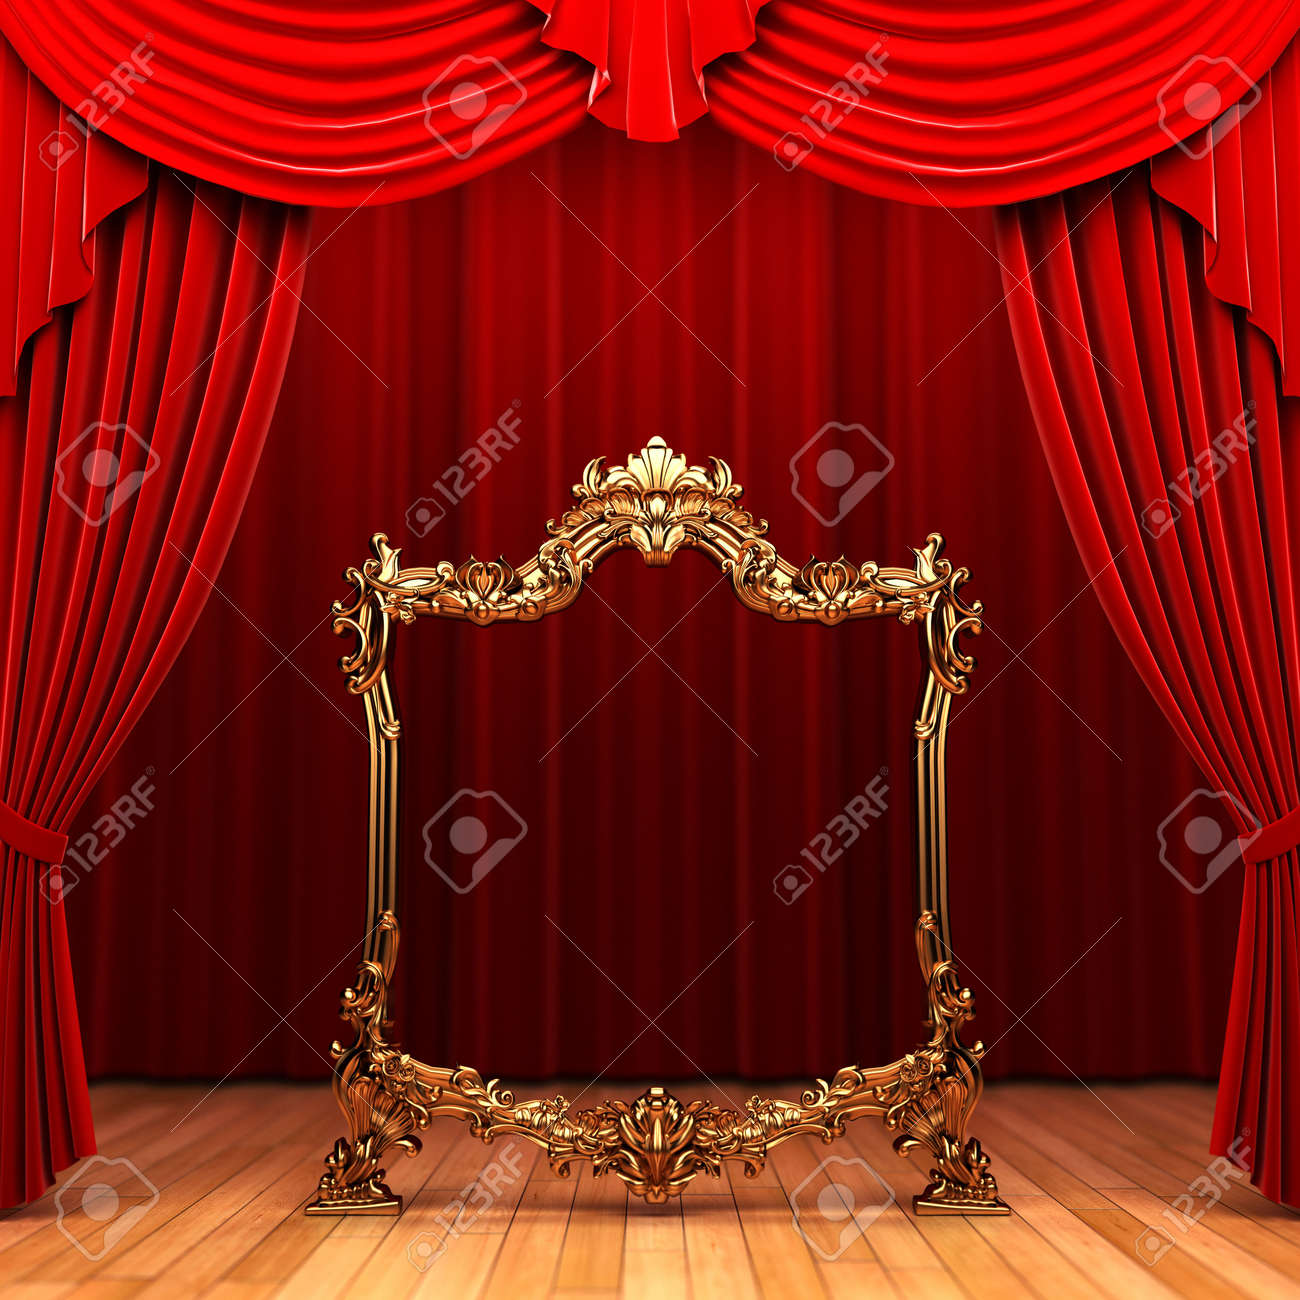 Red Gold Curtains Stock Photos Royalty Free Red Gold Curtains